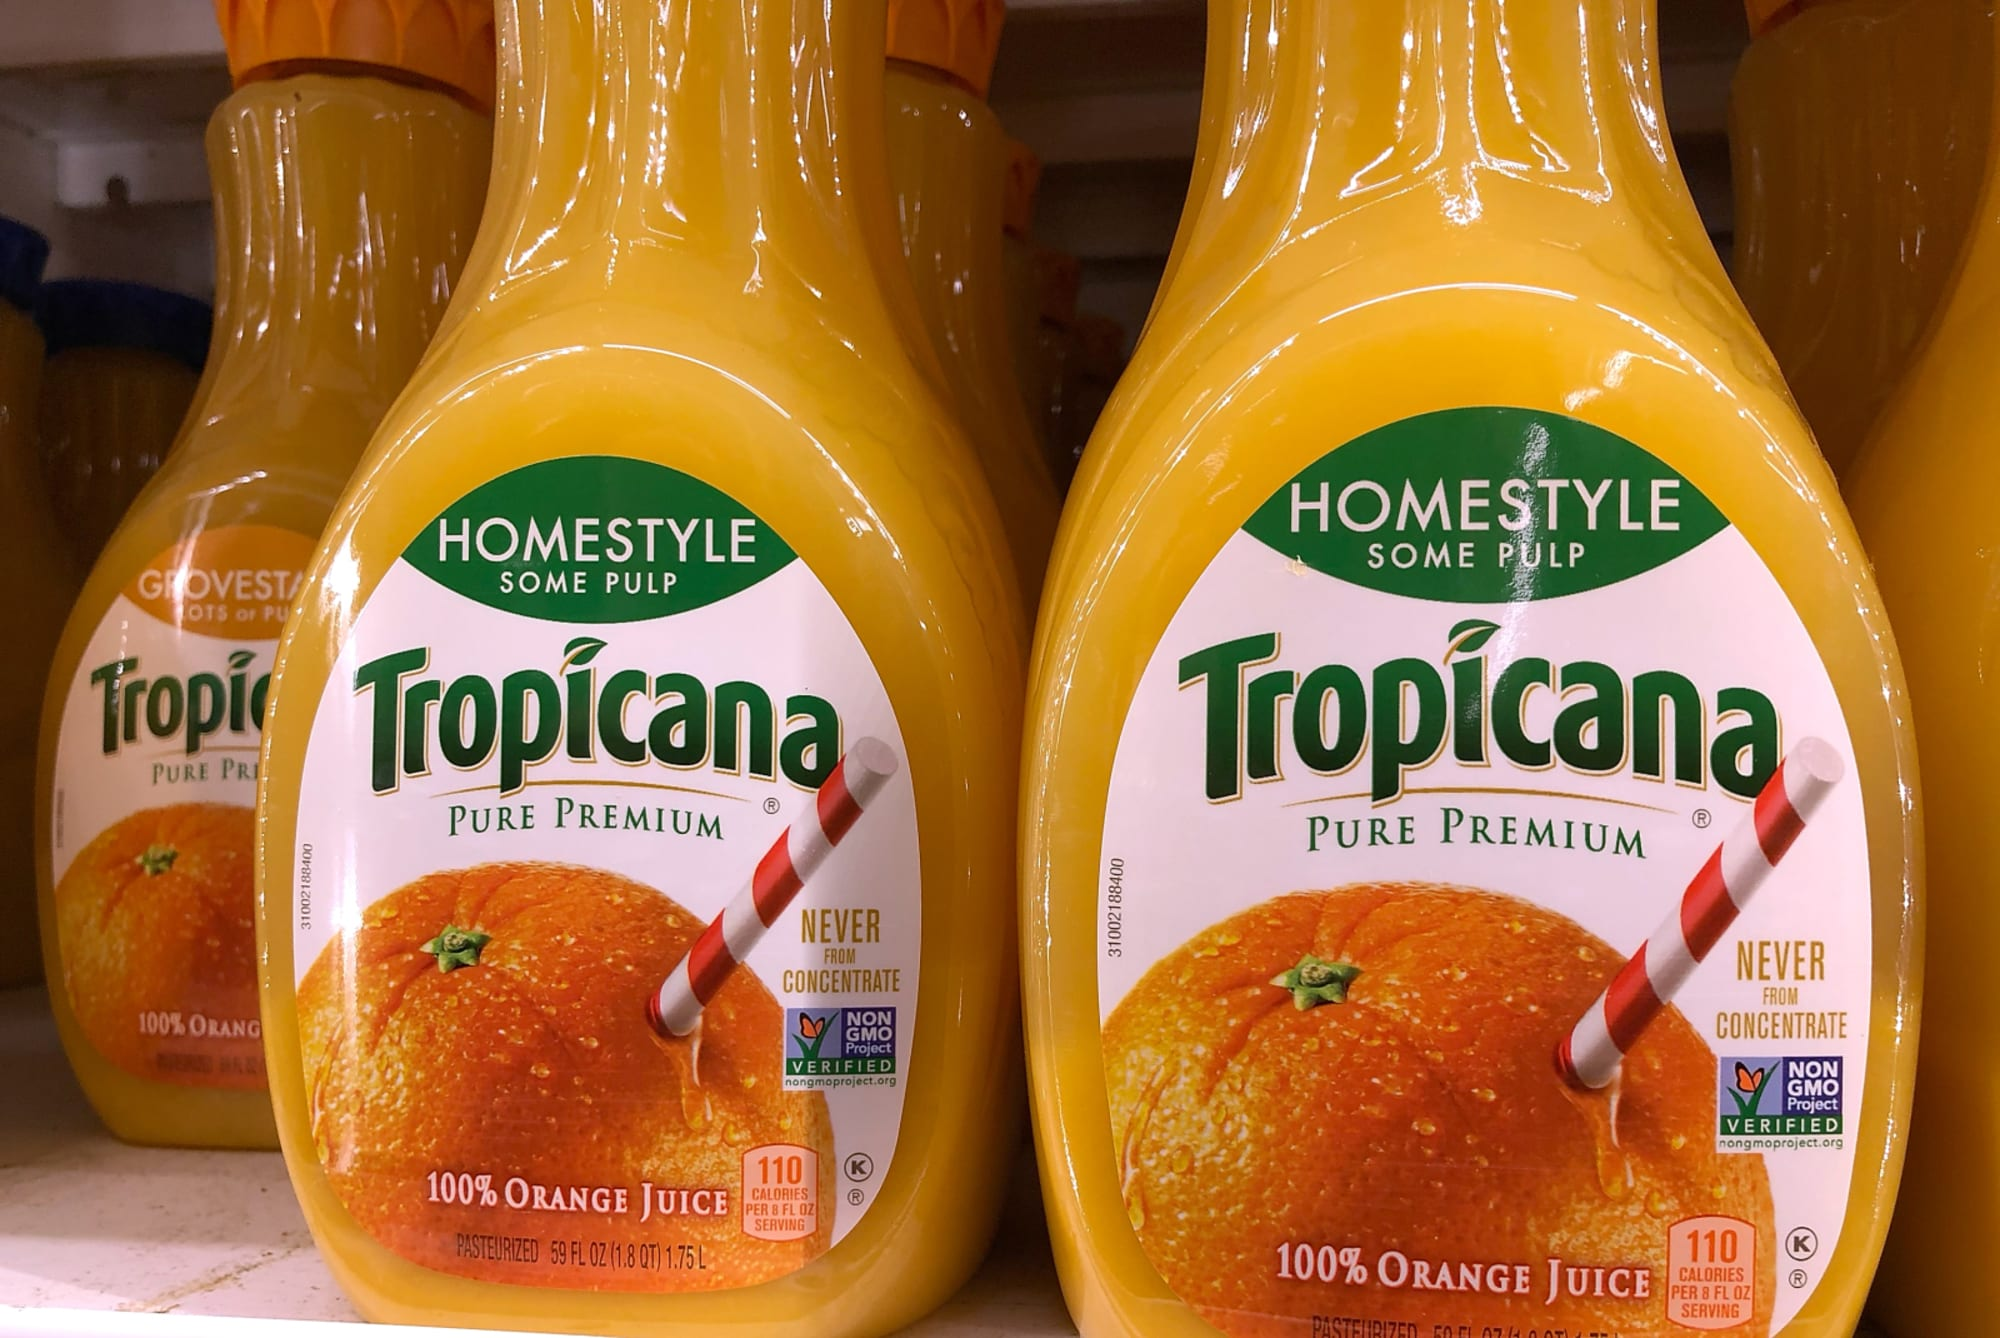 Tropicana solves the orange juice and toothpaste dilemma